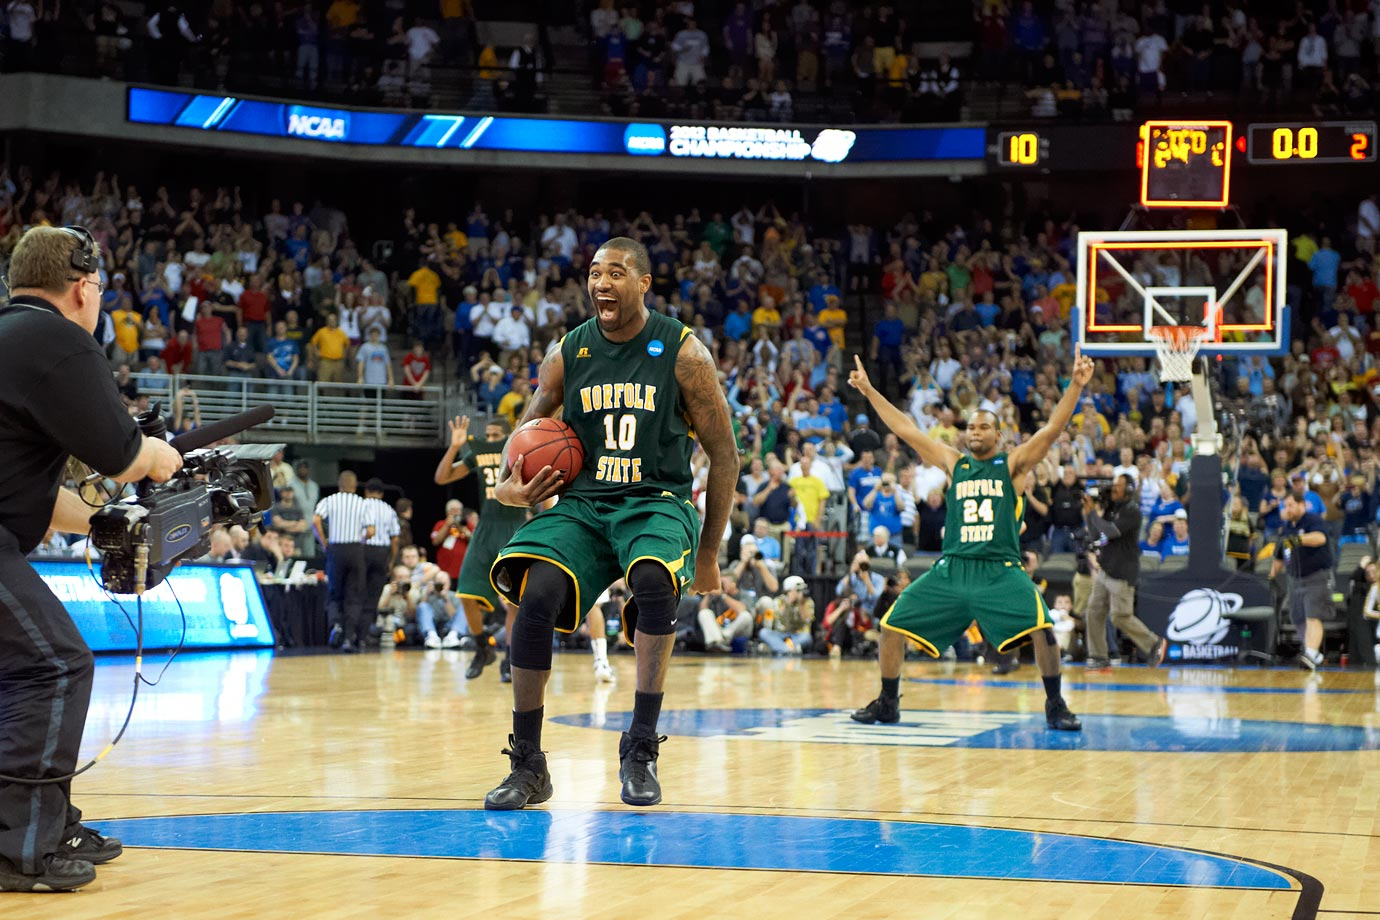 Kyle O'Quinn put together the finest game of his career at the biggest moment in the history of Norfolk State basketball. The senior finished with 26 points and 14 rebounds, helping the No. 15 seed Spartans to an 86-84 victory over the second-seeded Tigers.